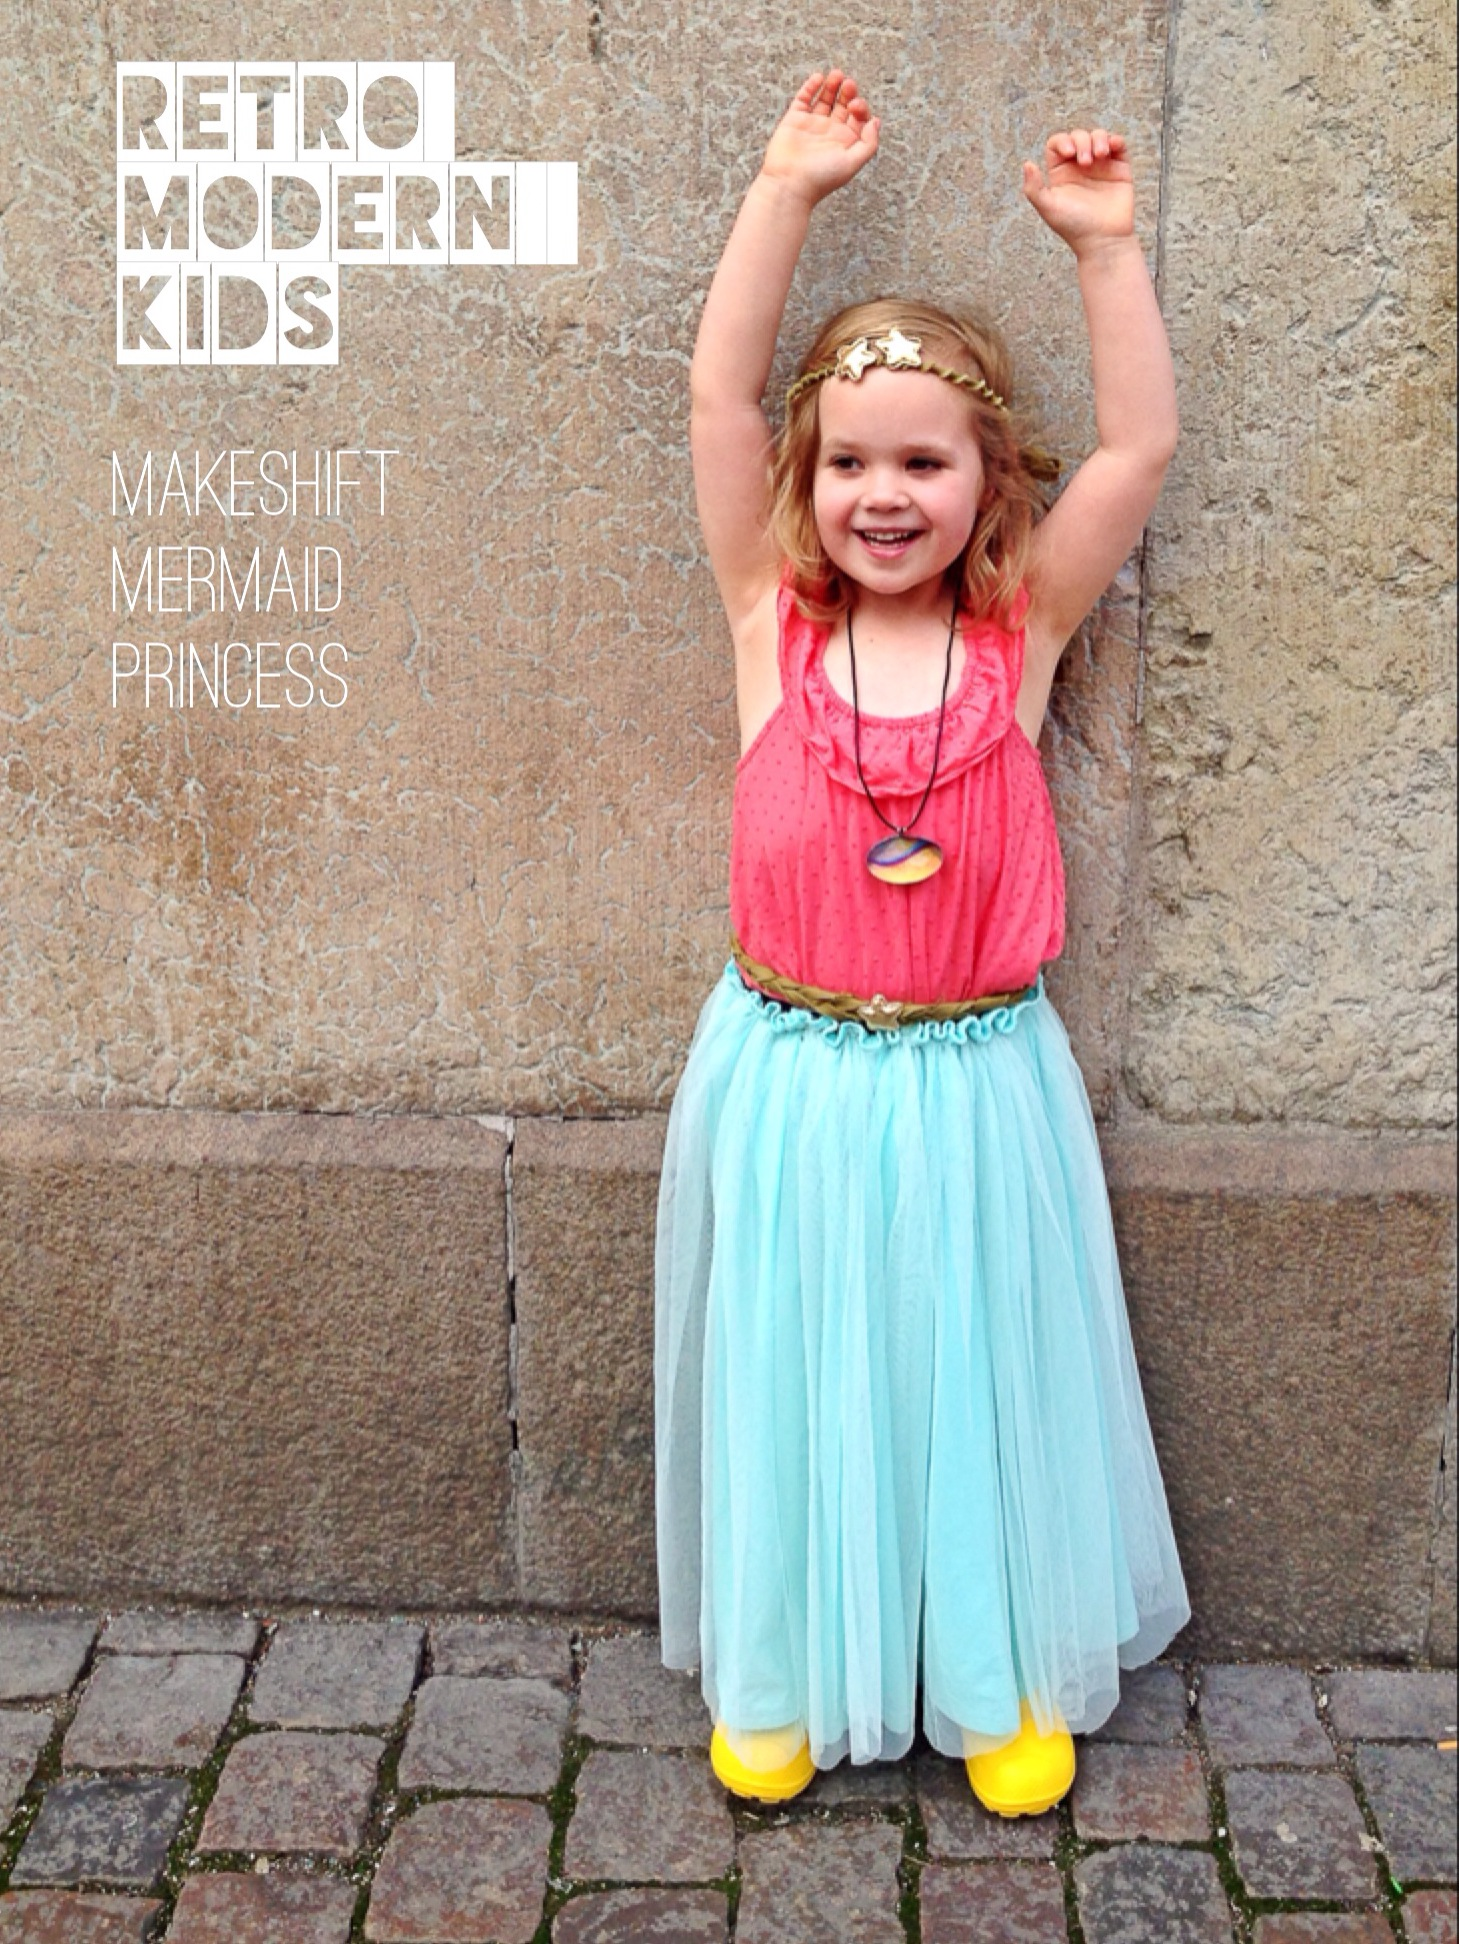 Makeshift Mermaid Princess costume by Retro Modern Kids